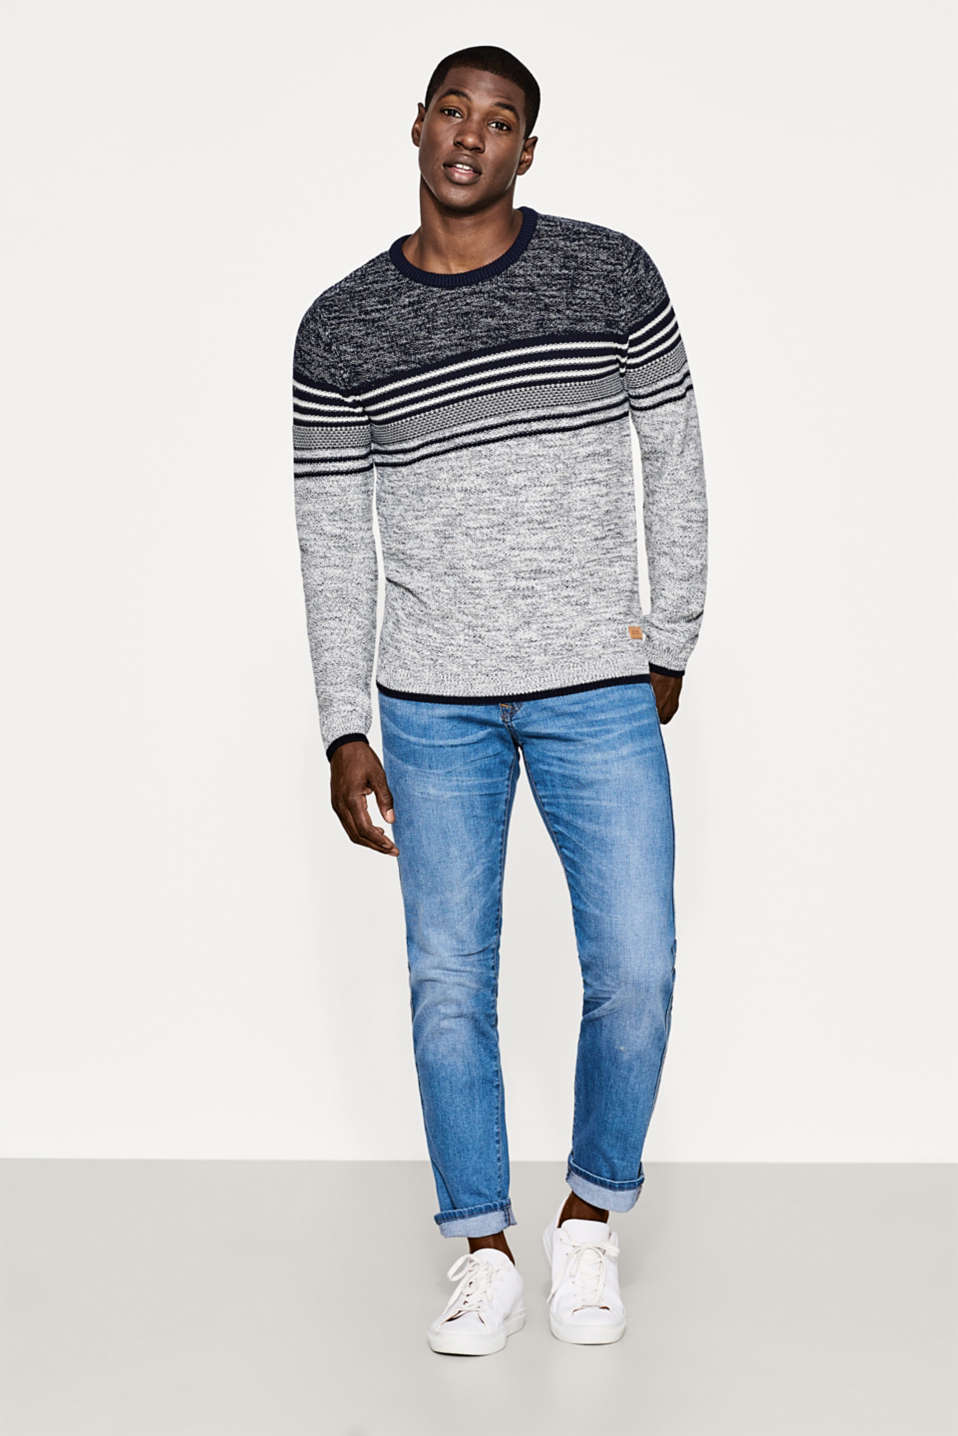 Two-tone jumper in textured yarn